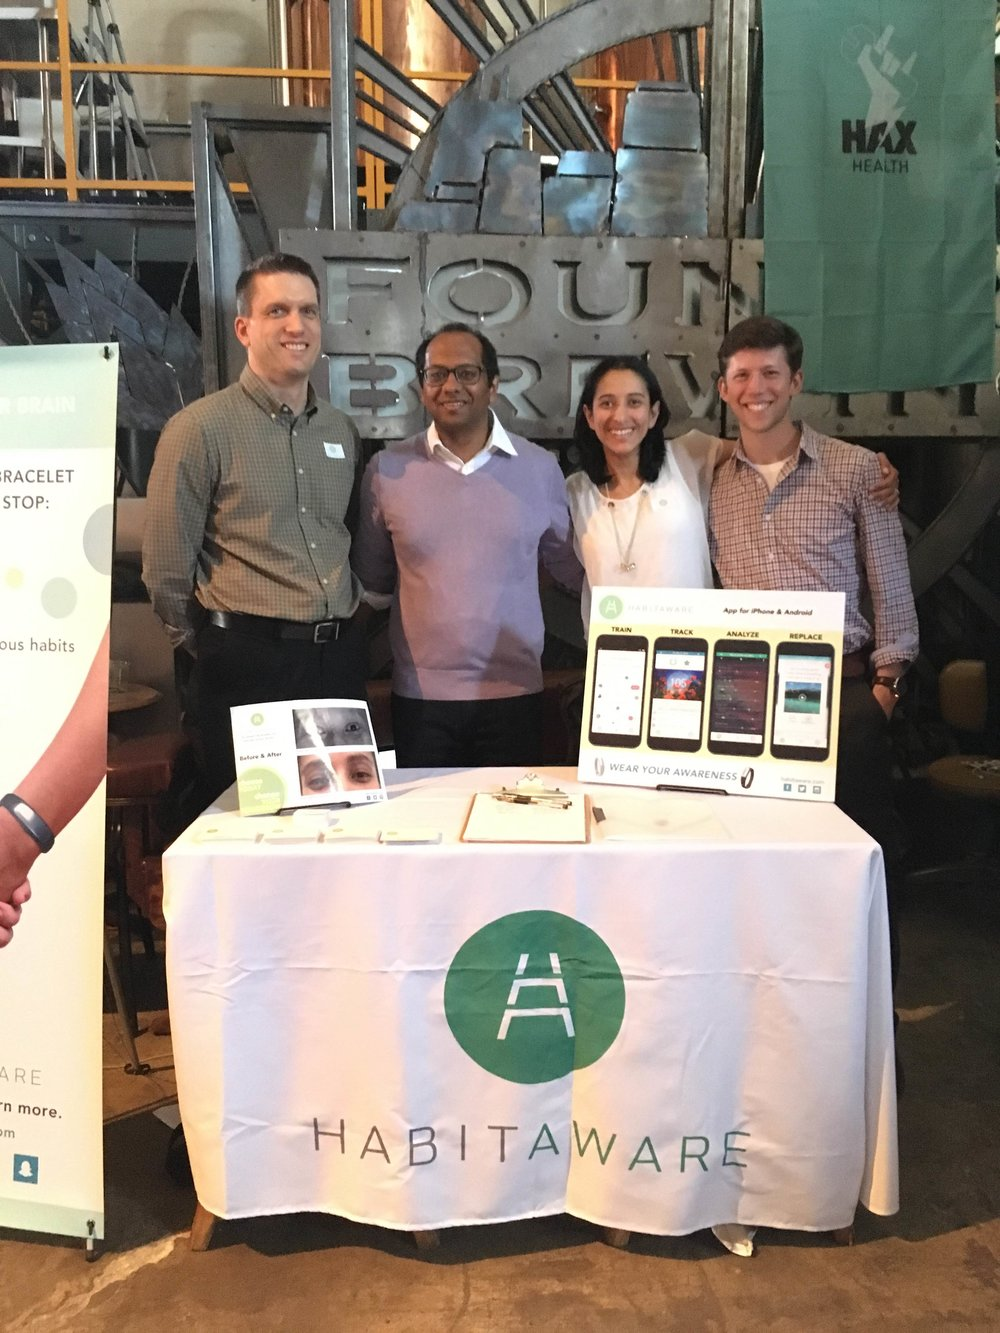 Kumar and the HabitAware team in 2016. Image courtesy of HabitAware